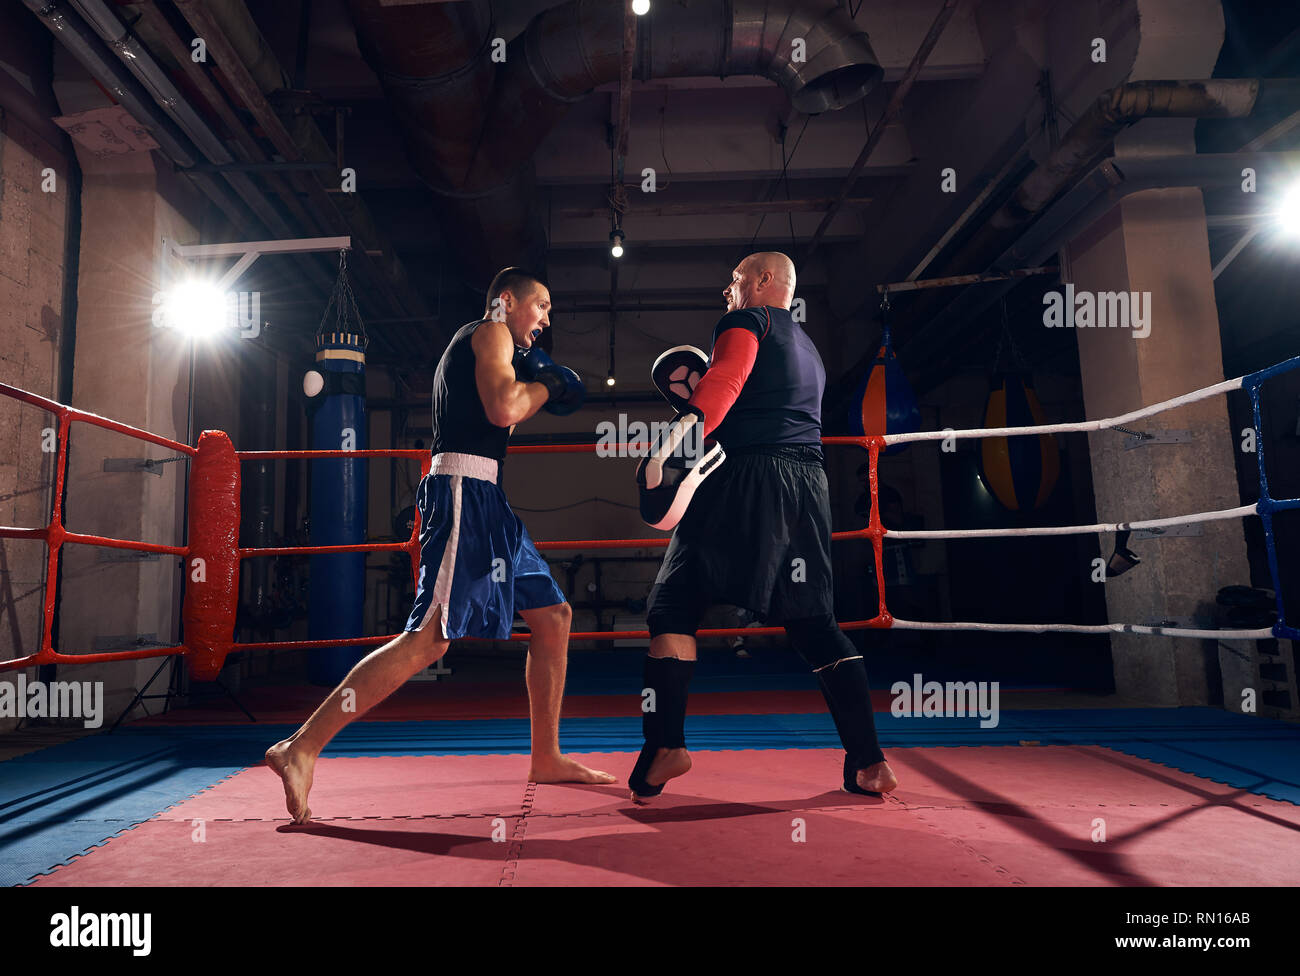 Young fighter practicing kickboxing with his trainer in the ring at the health club - Stock Image